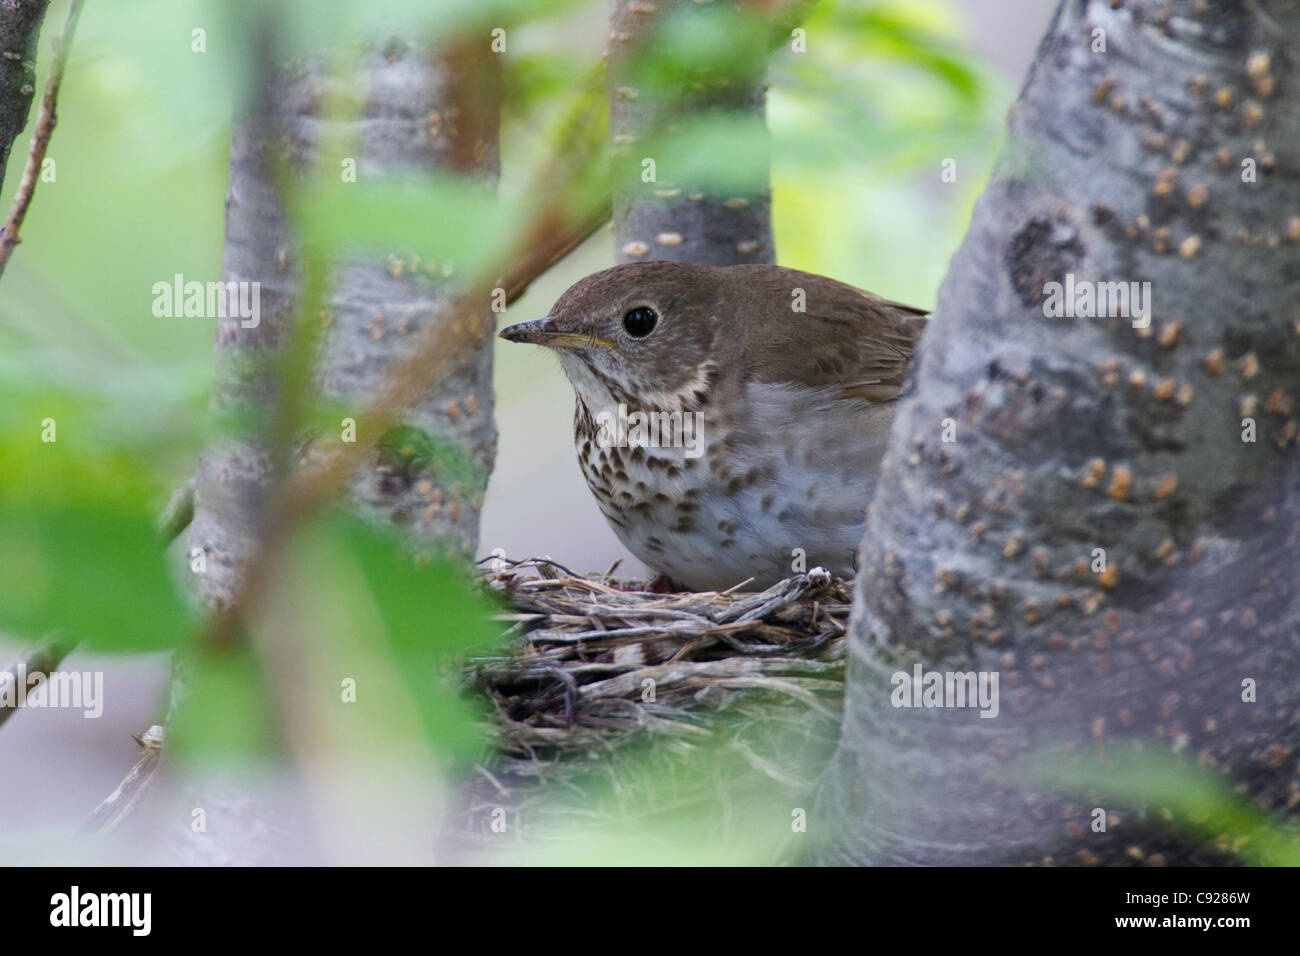 Gray-cheeked Thrush on nest in a tree, Long Island, Copper River Delta,Southcentral Alaska, Spring - Stock Image